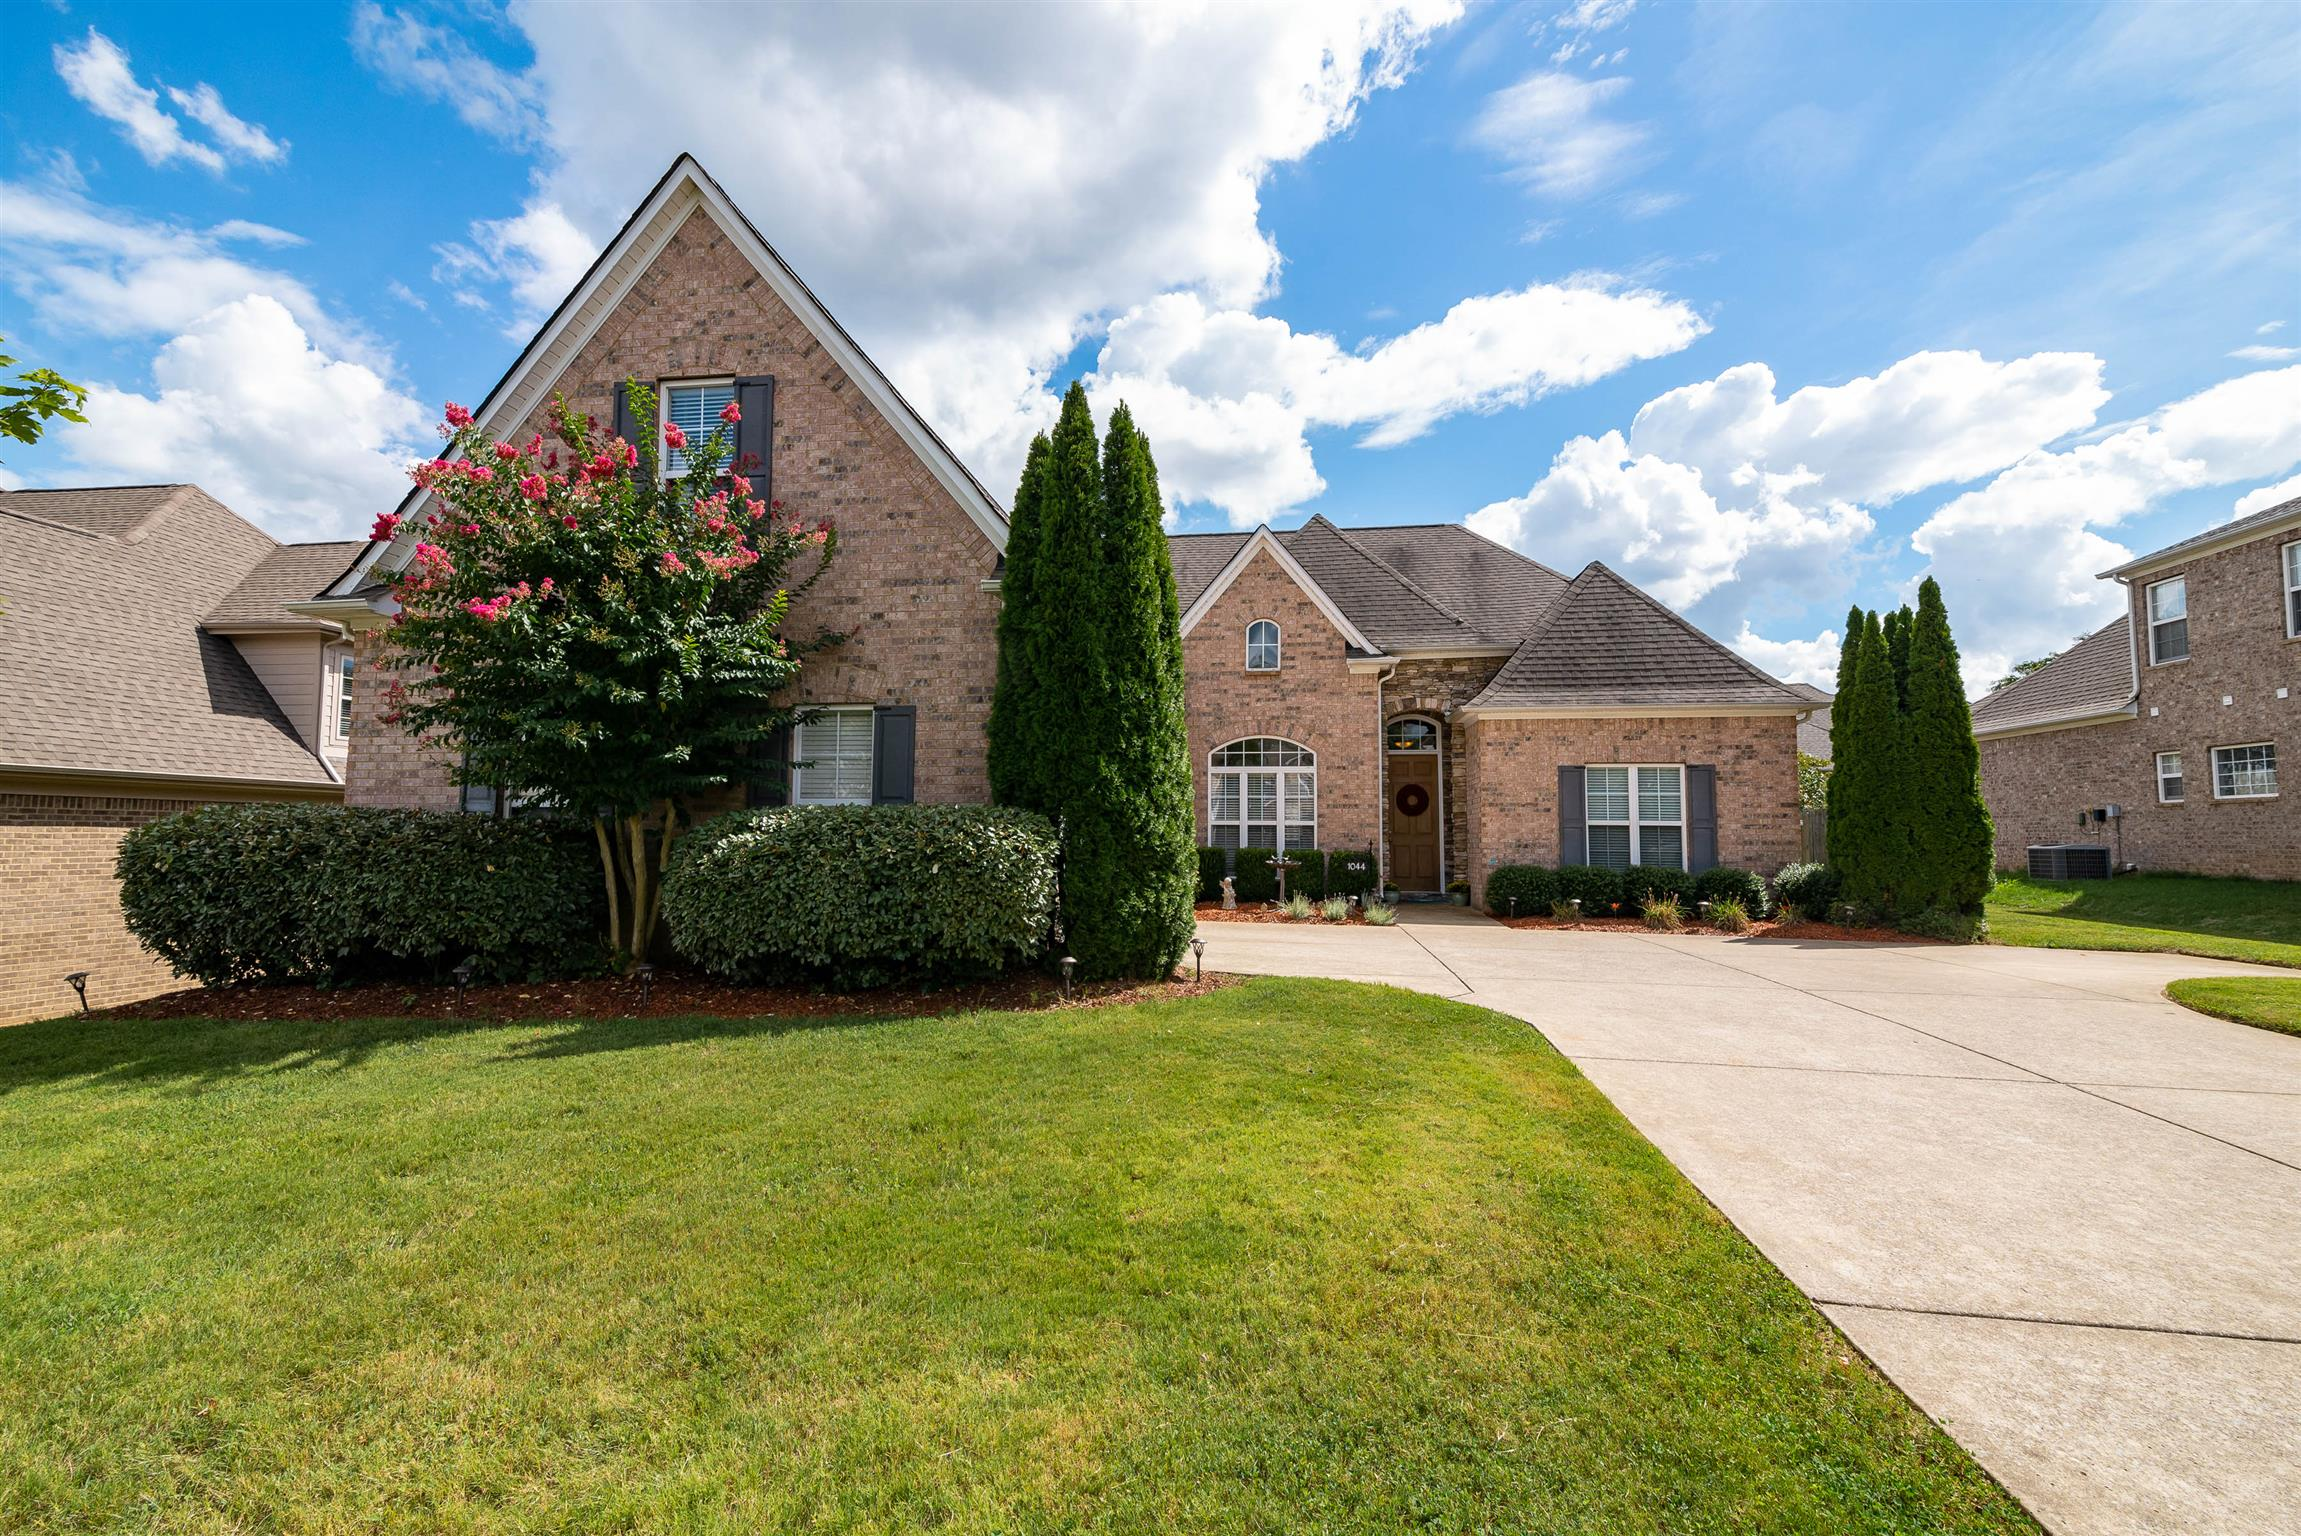 1044 Neal Crest Cir, Spring Hill, TN 37174